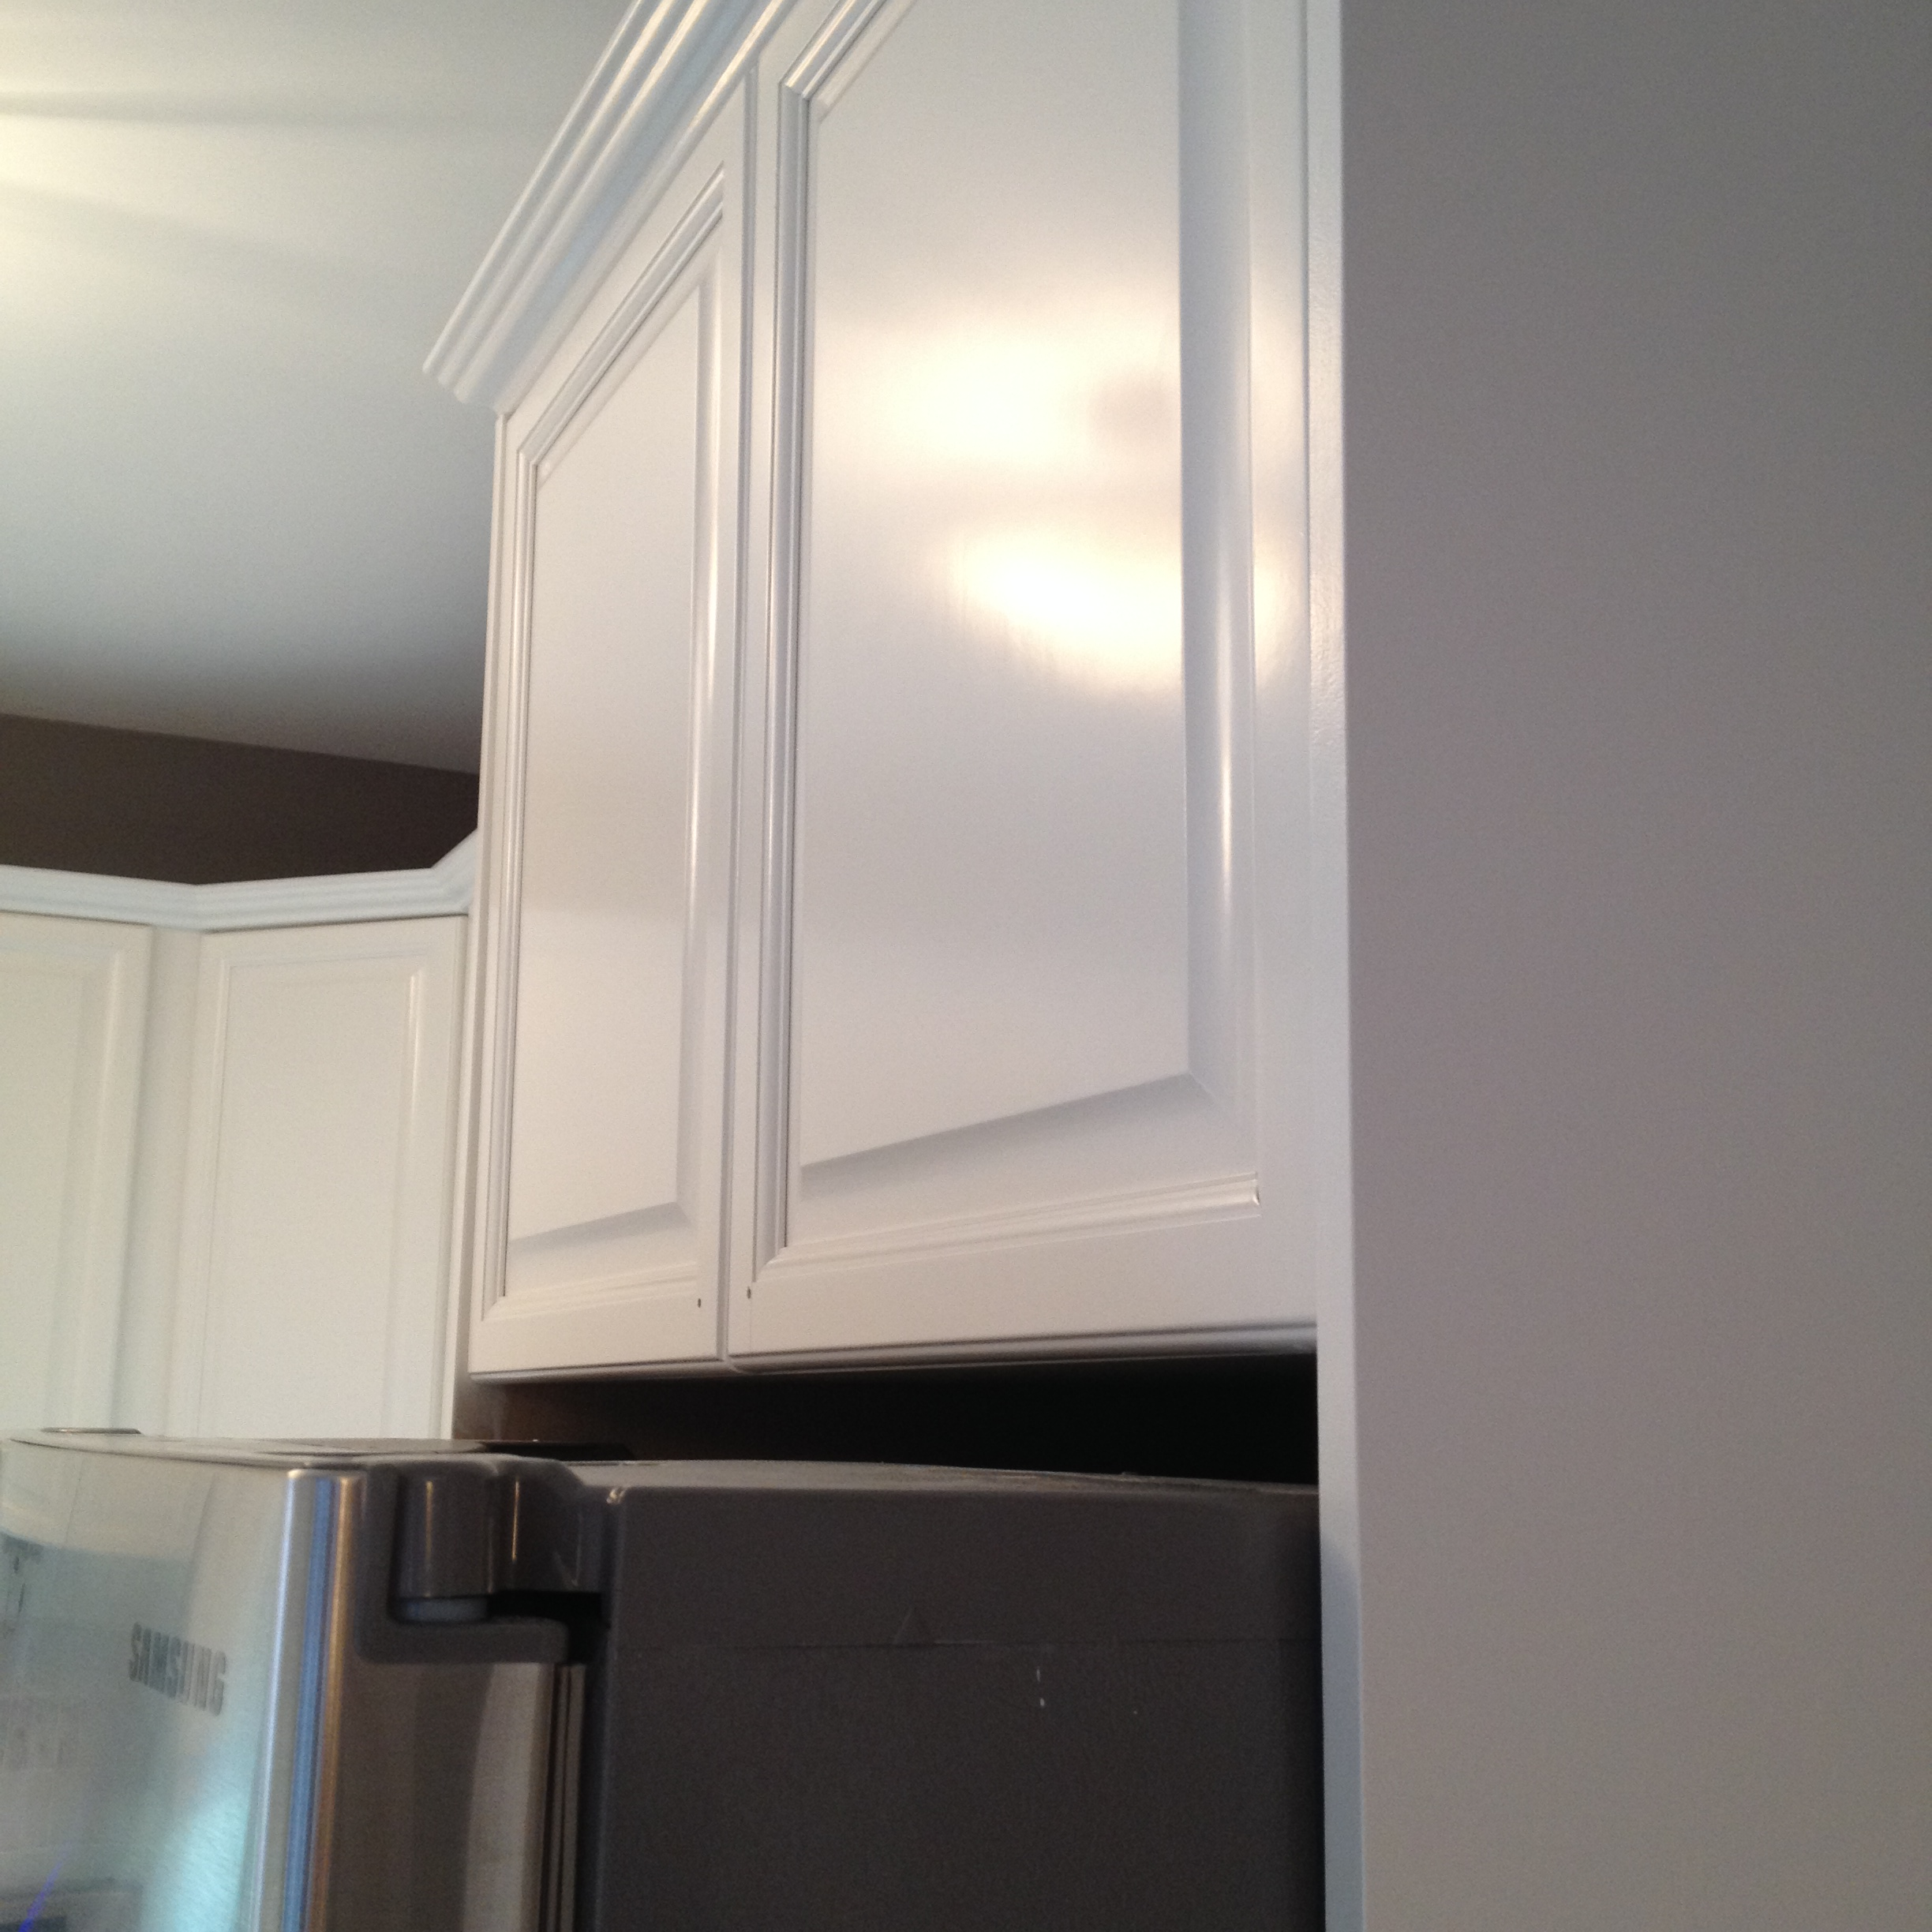 Sprayed Painted Cabinet Doors Professional Kitchen Cabinet Painting And Refinishing Spray Painting In Oakville Burlington Mississauga Milton